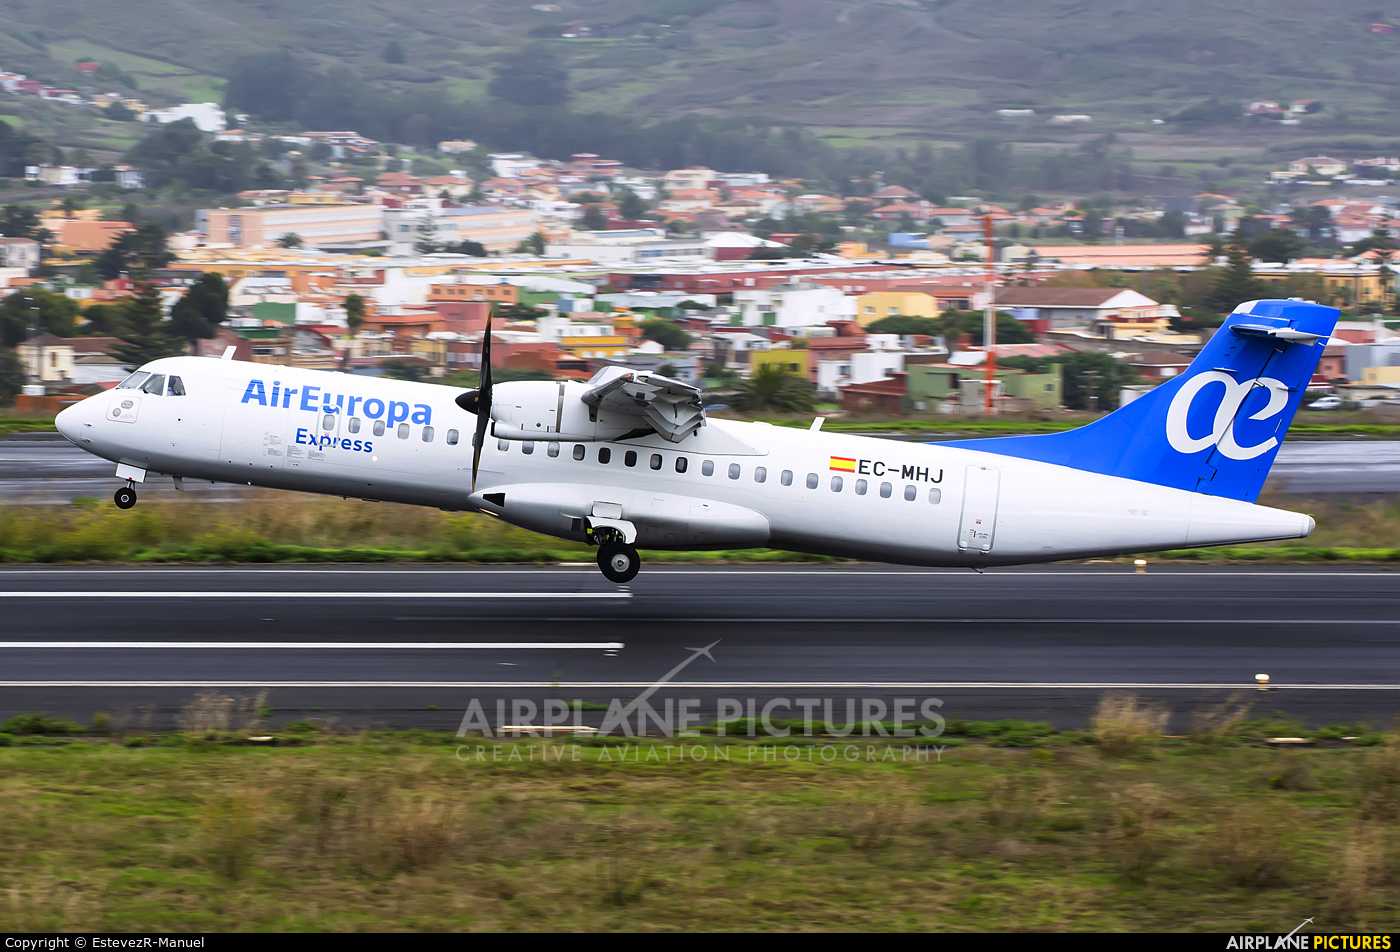 Air Europa Express EC-MHJ aircraft at Tenerife Norte - Los Rodeos